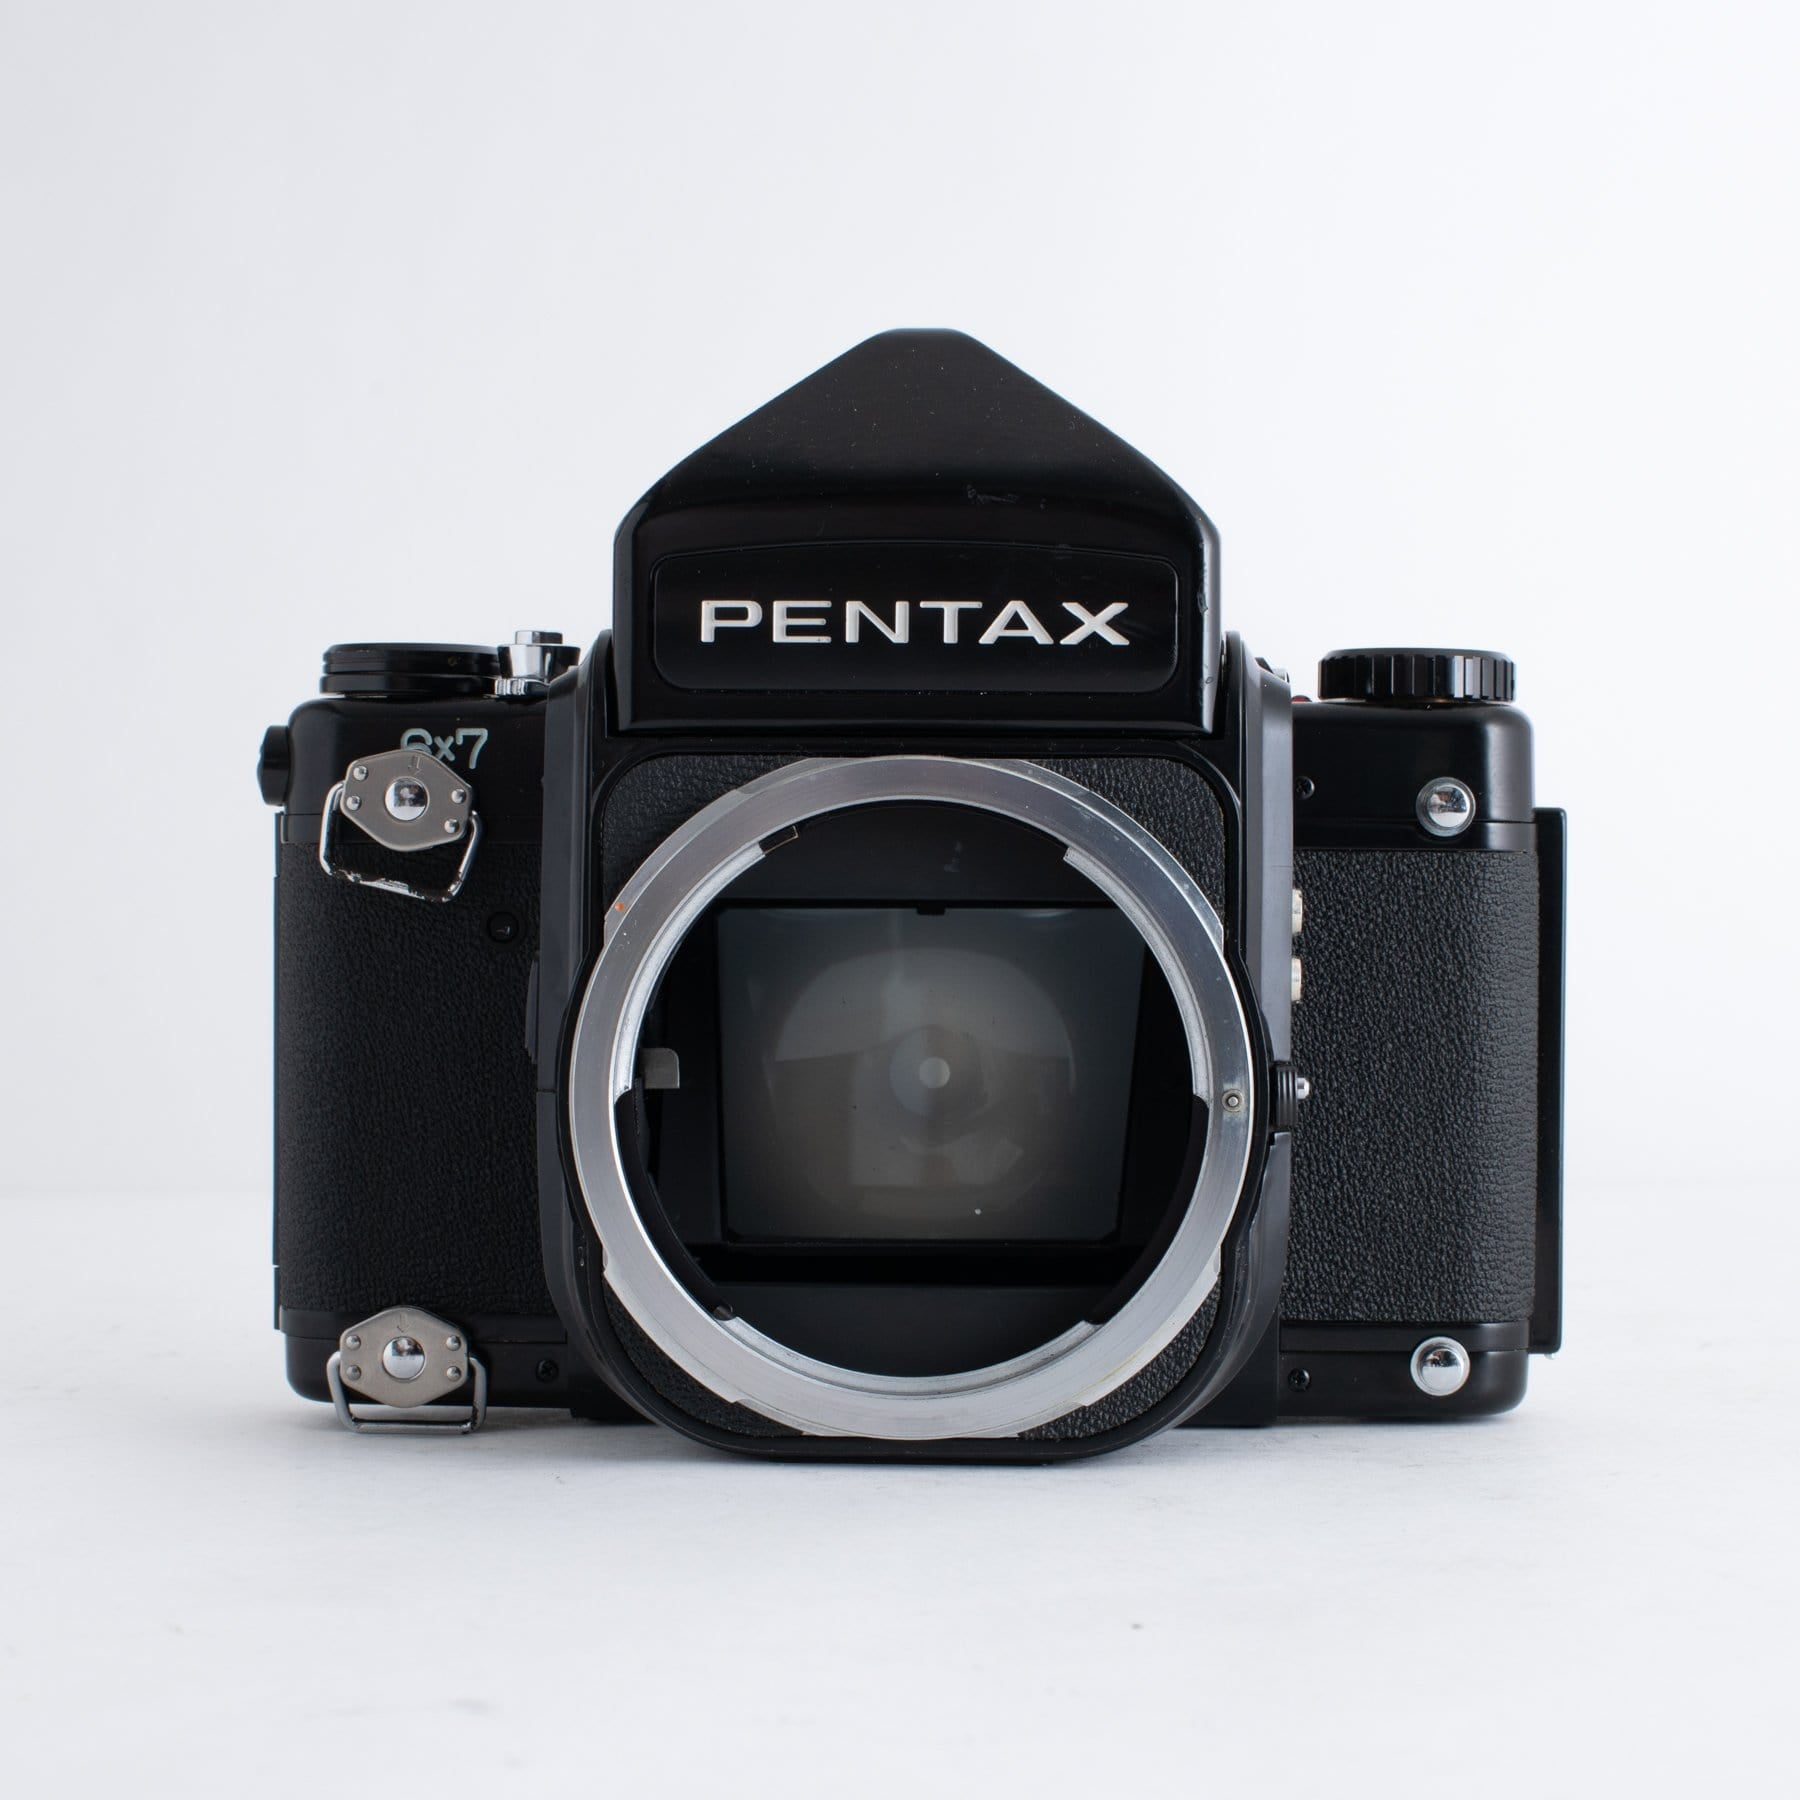 Pentax 6x7 with Strap Lugs